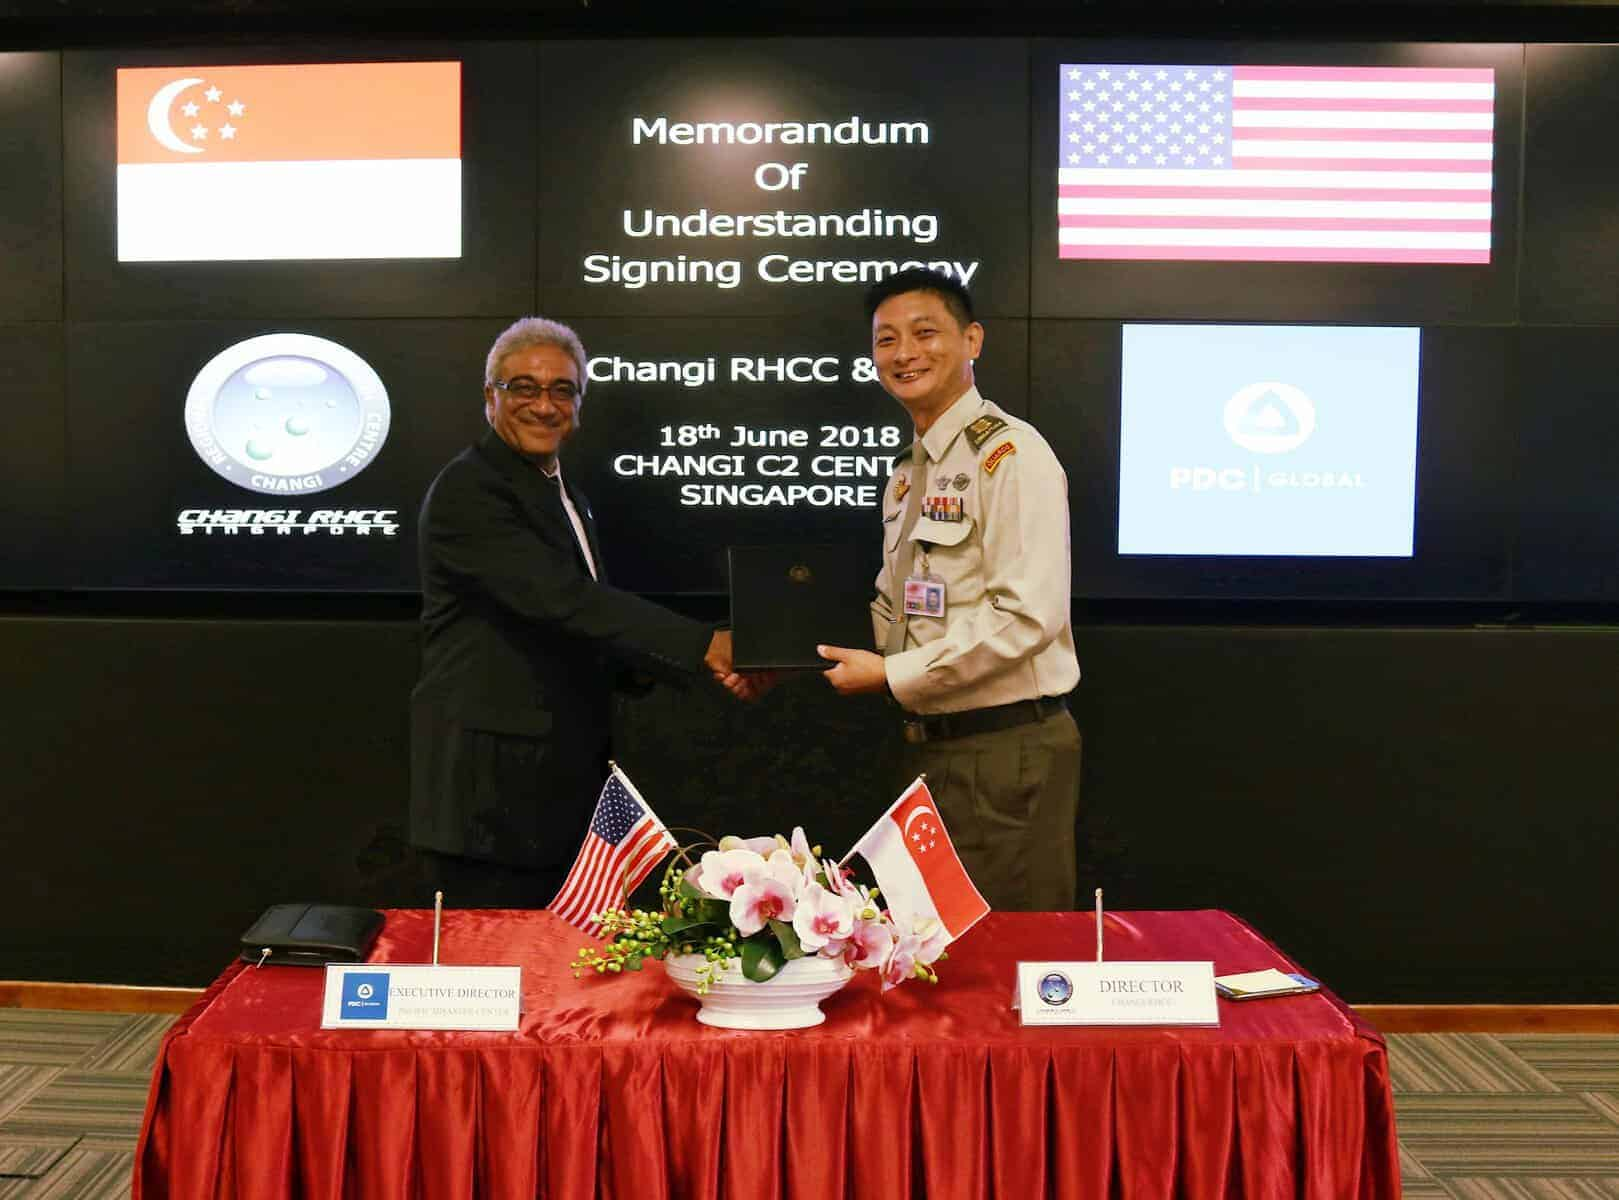 PDC Executive Director Ray Shirkhodai and RHCC Director COL Lee Kuan Chung shake hands during MOU signing ceremony.